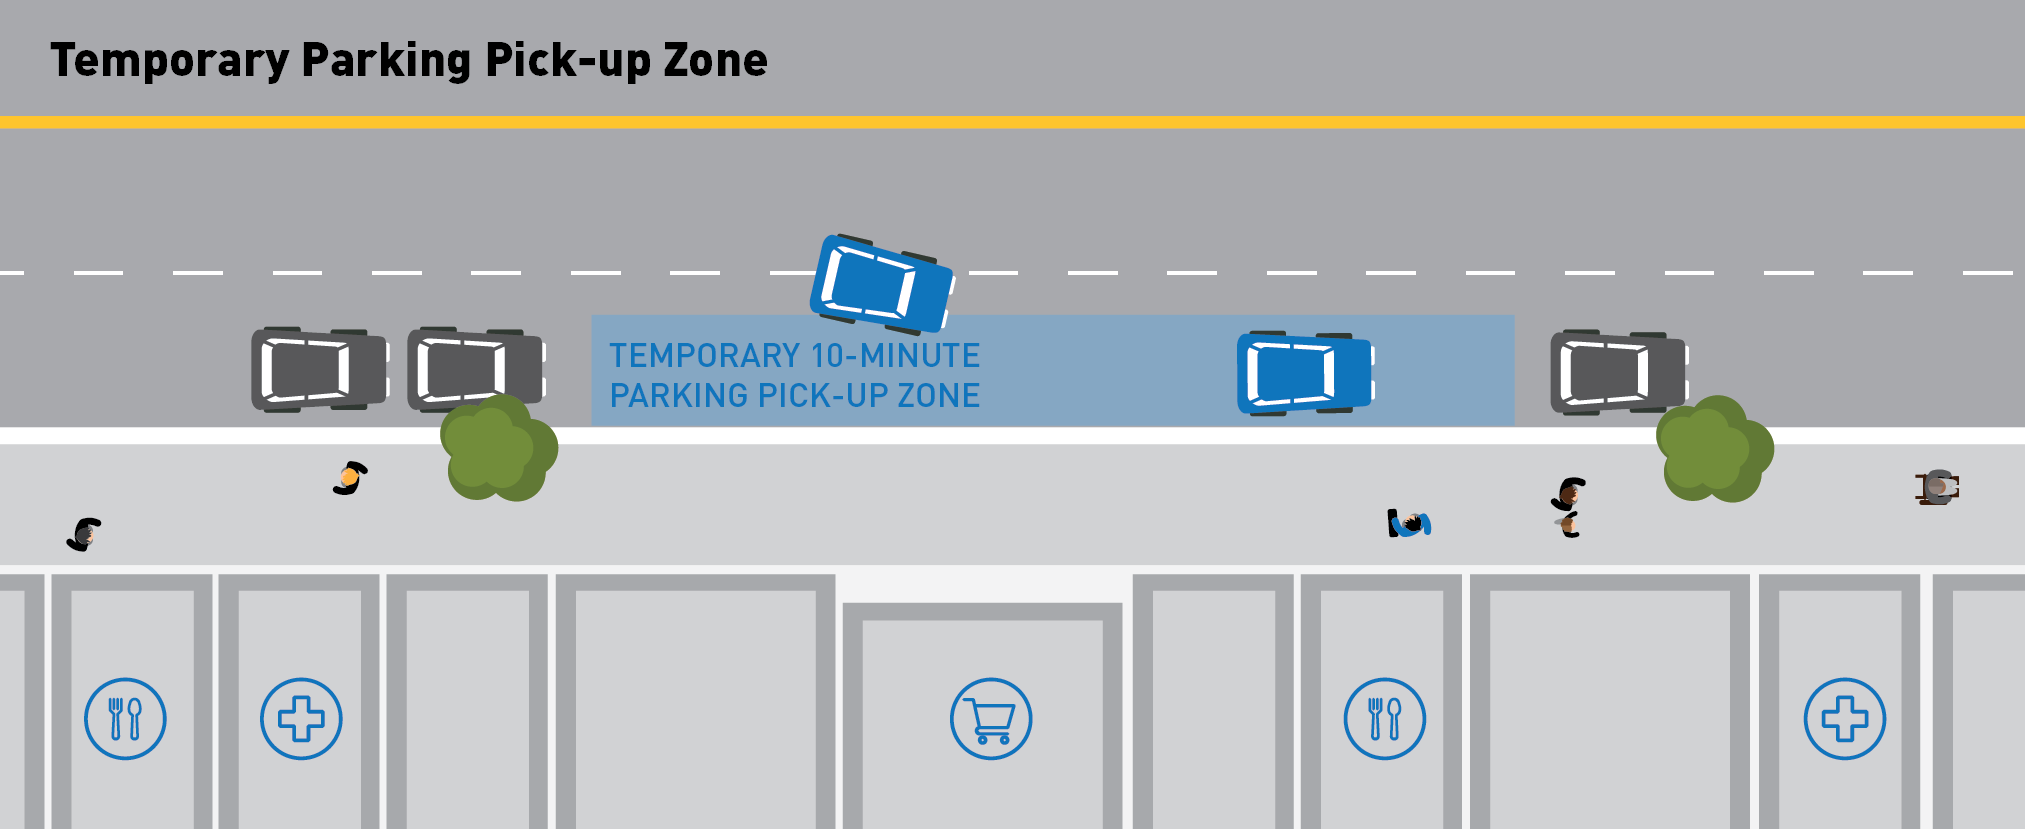 Illustration of a dedicated zone along the curb lane for drivers to park temporarily for 10 minutes in front of a storefront. The illustration shows a driver parked in the curb lane while he picks up a delivery from a nearby restaurant.